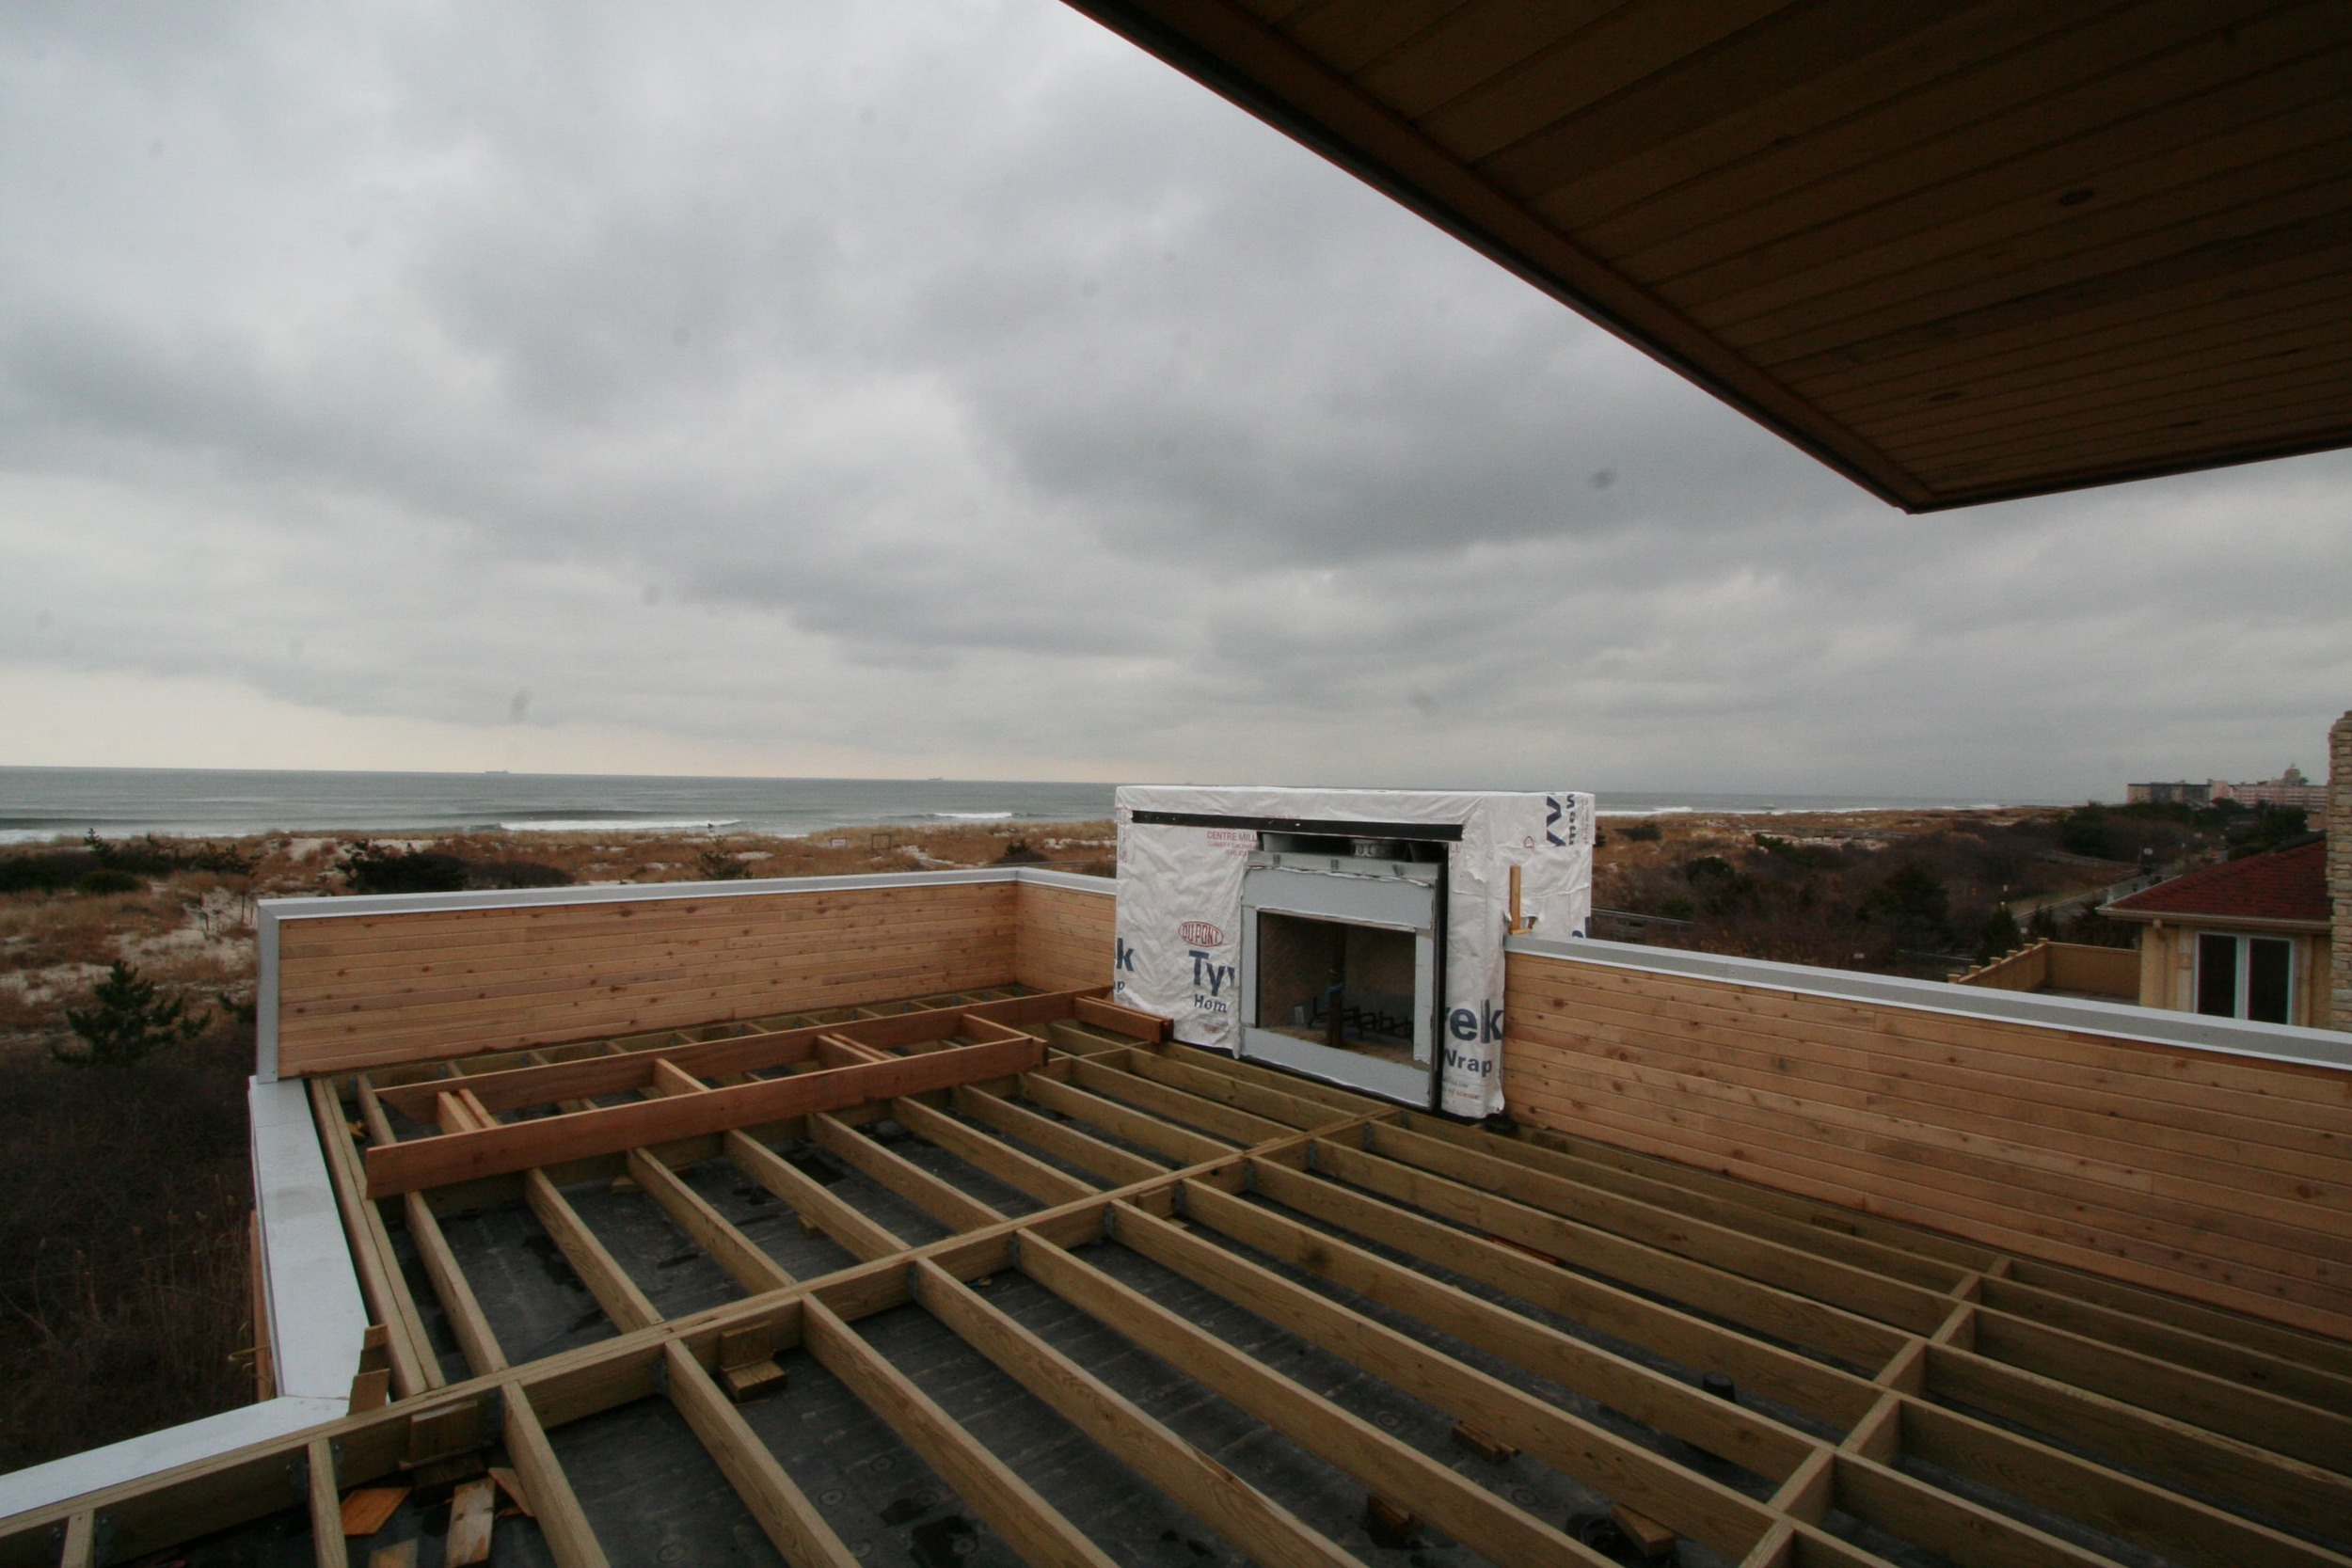 View of outdoor deck construction